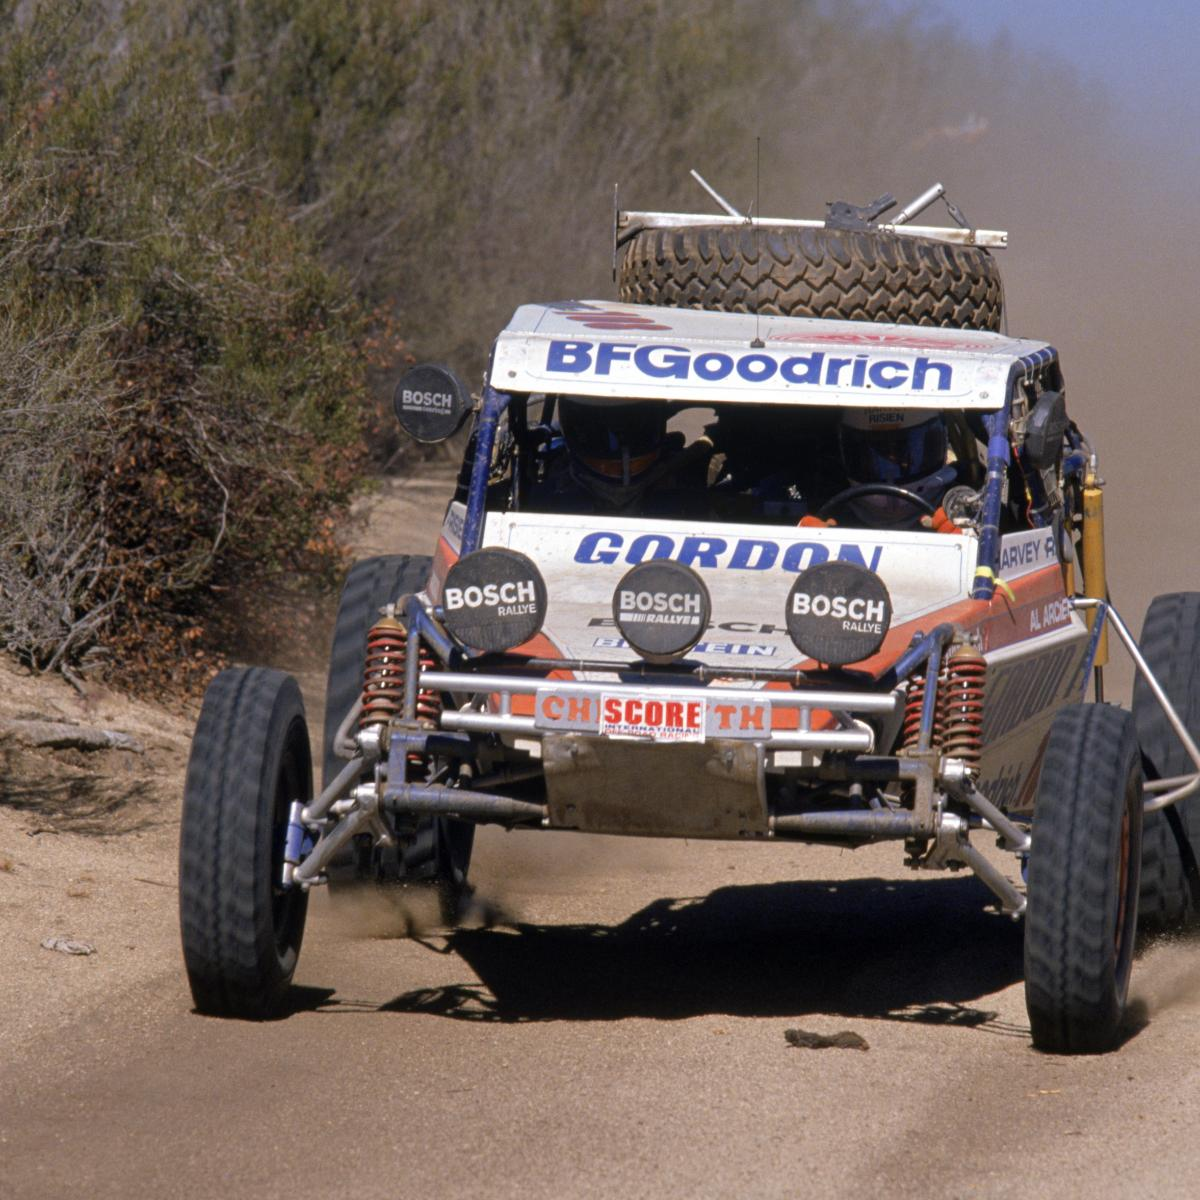 Best Off Road Vehicle Of All Time >> Baja 1000 2013: Complete Guide to Friday's Cars and Trucks ...